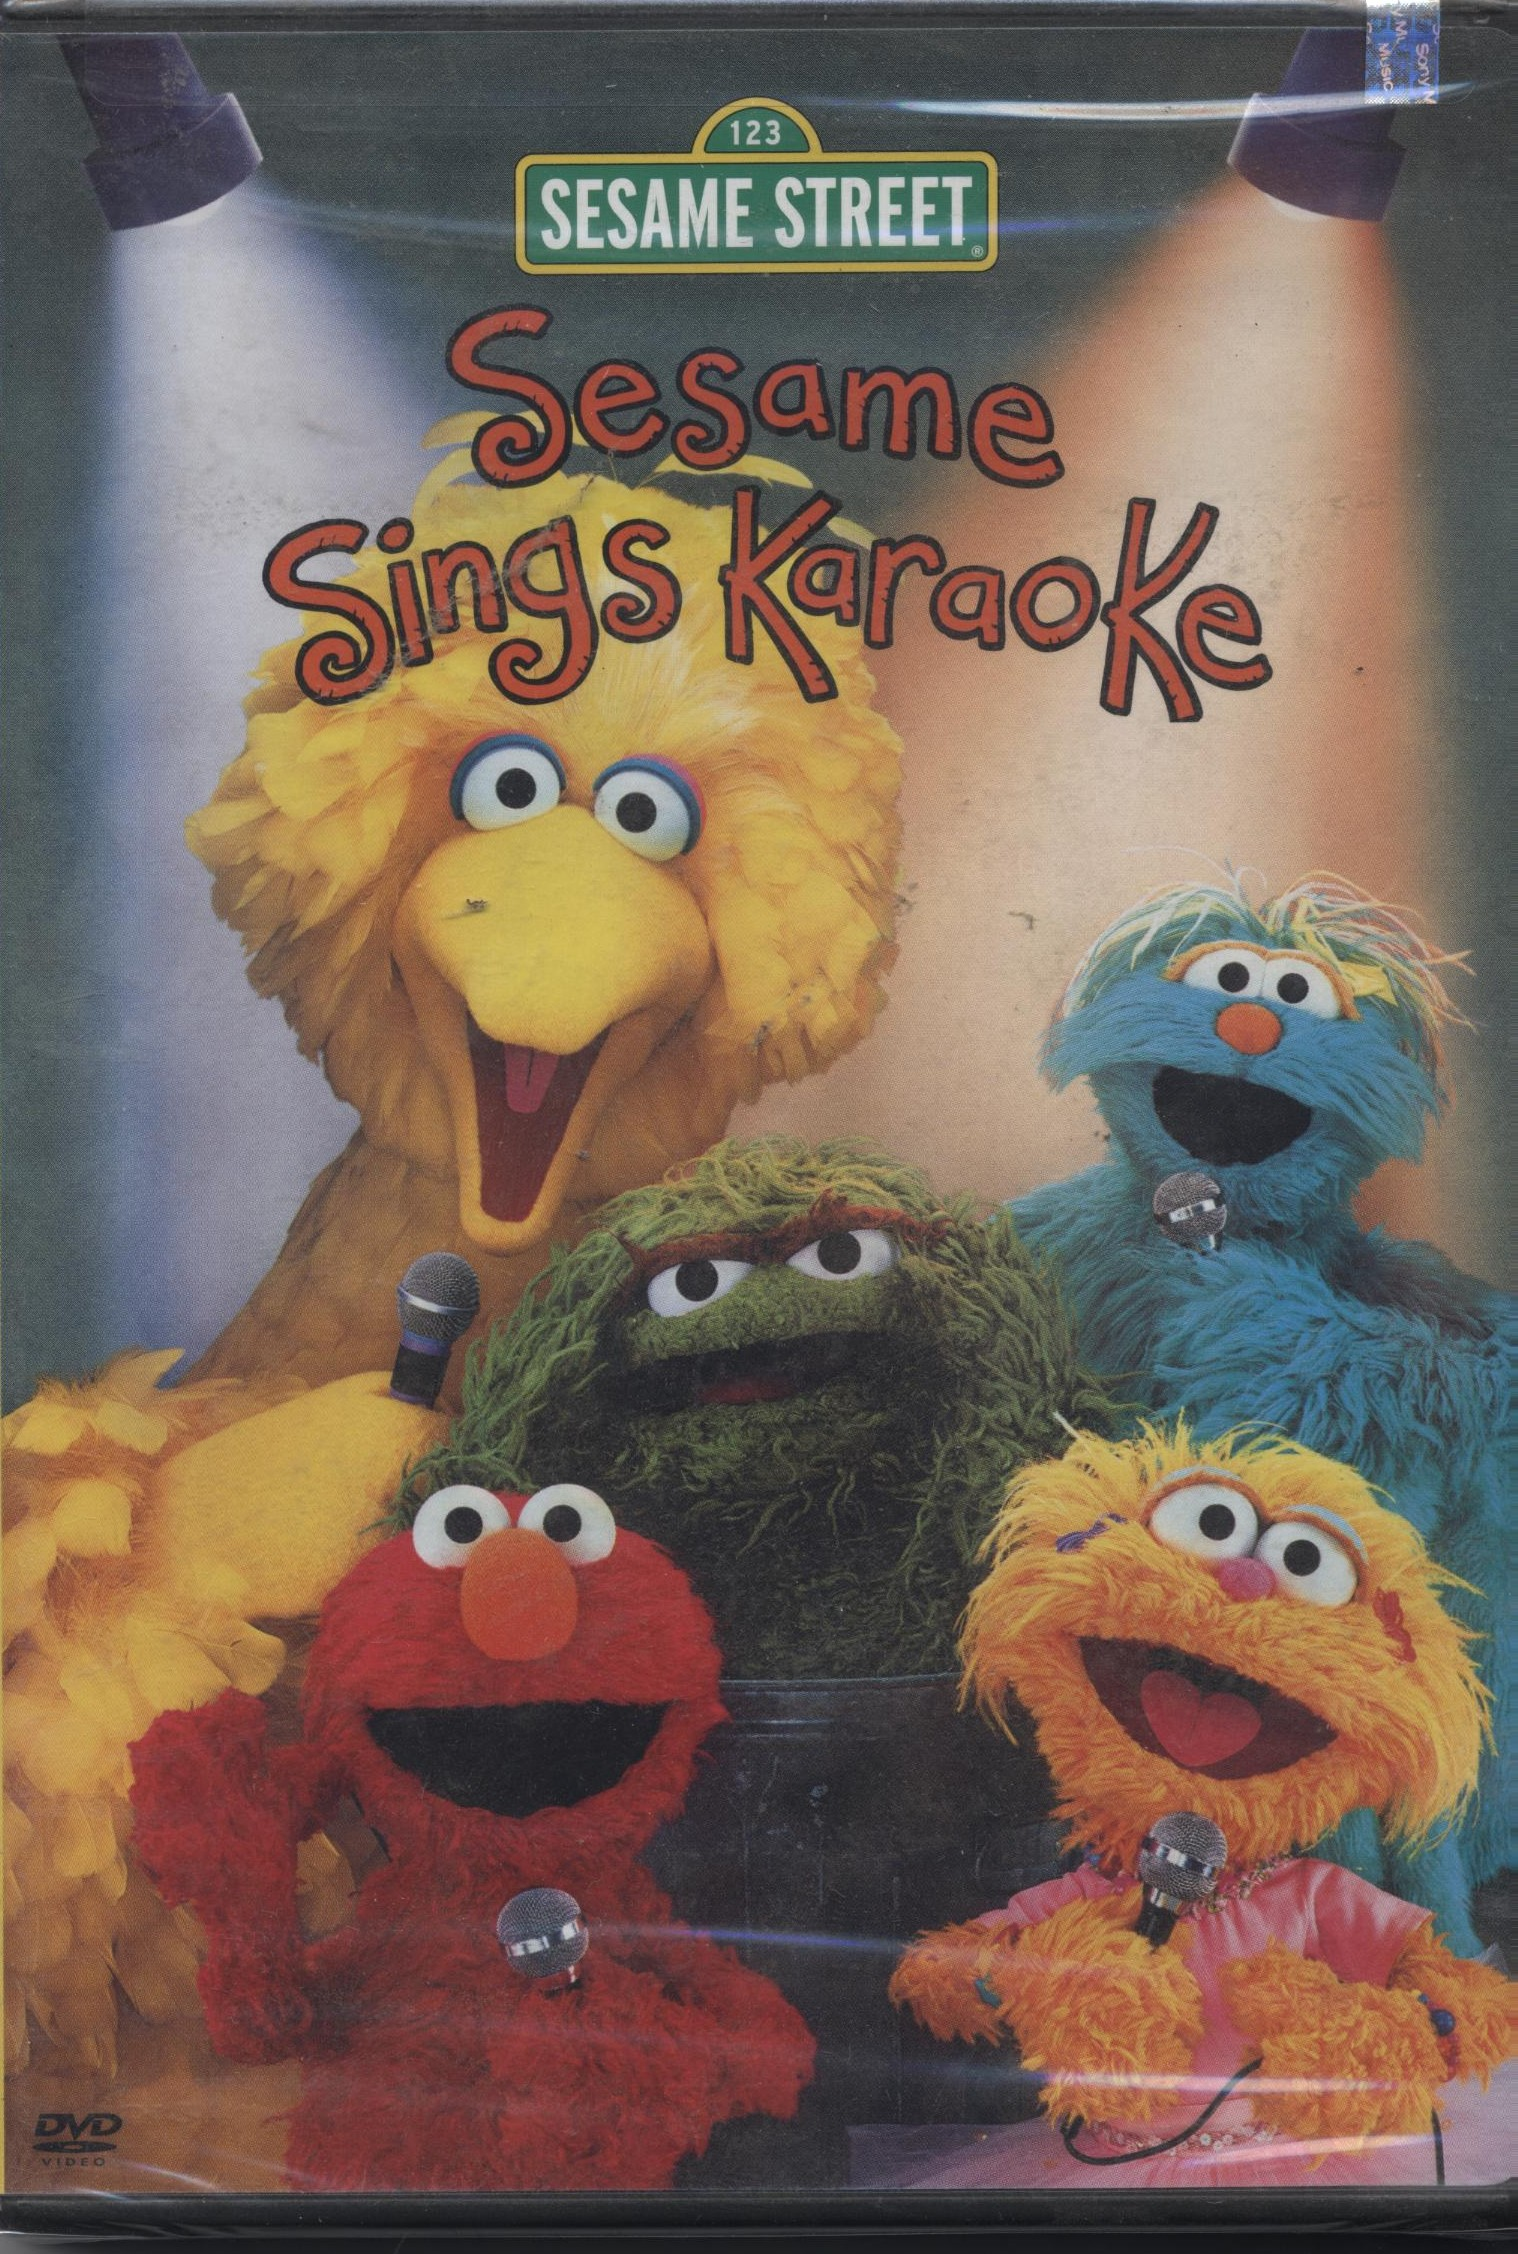 Where Can I Sell My Vhs Tapes >> sesame Street -Sesame Sings Karaoke